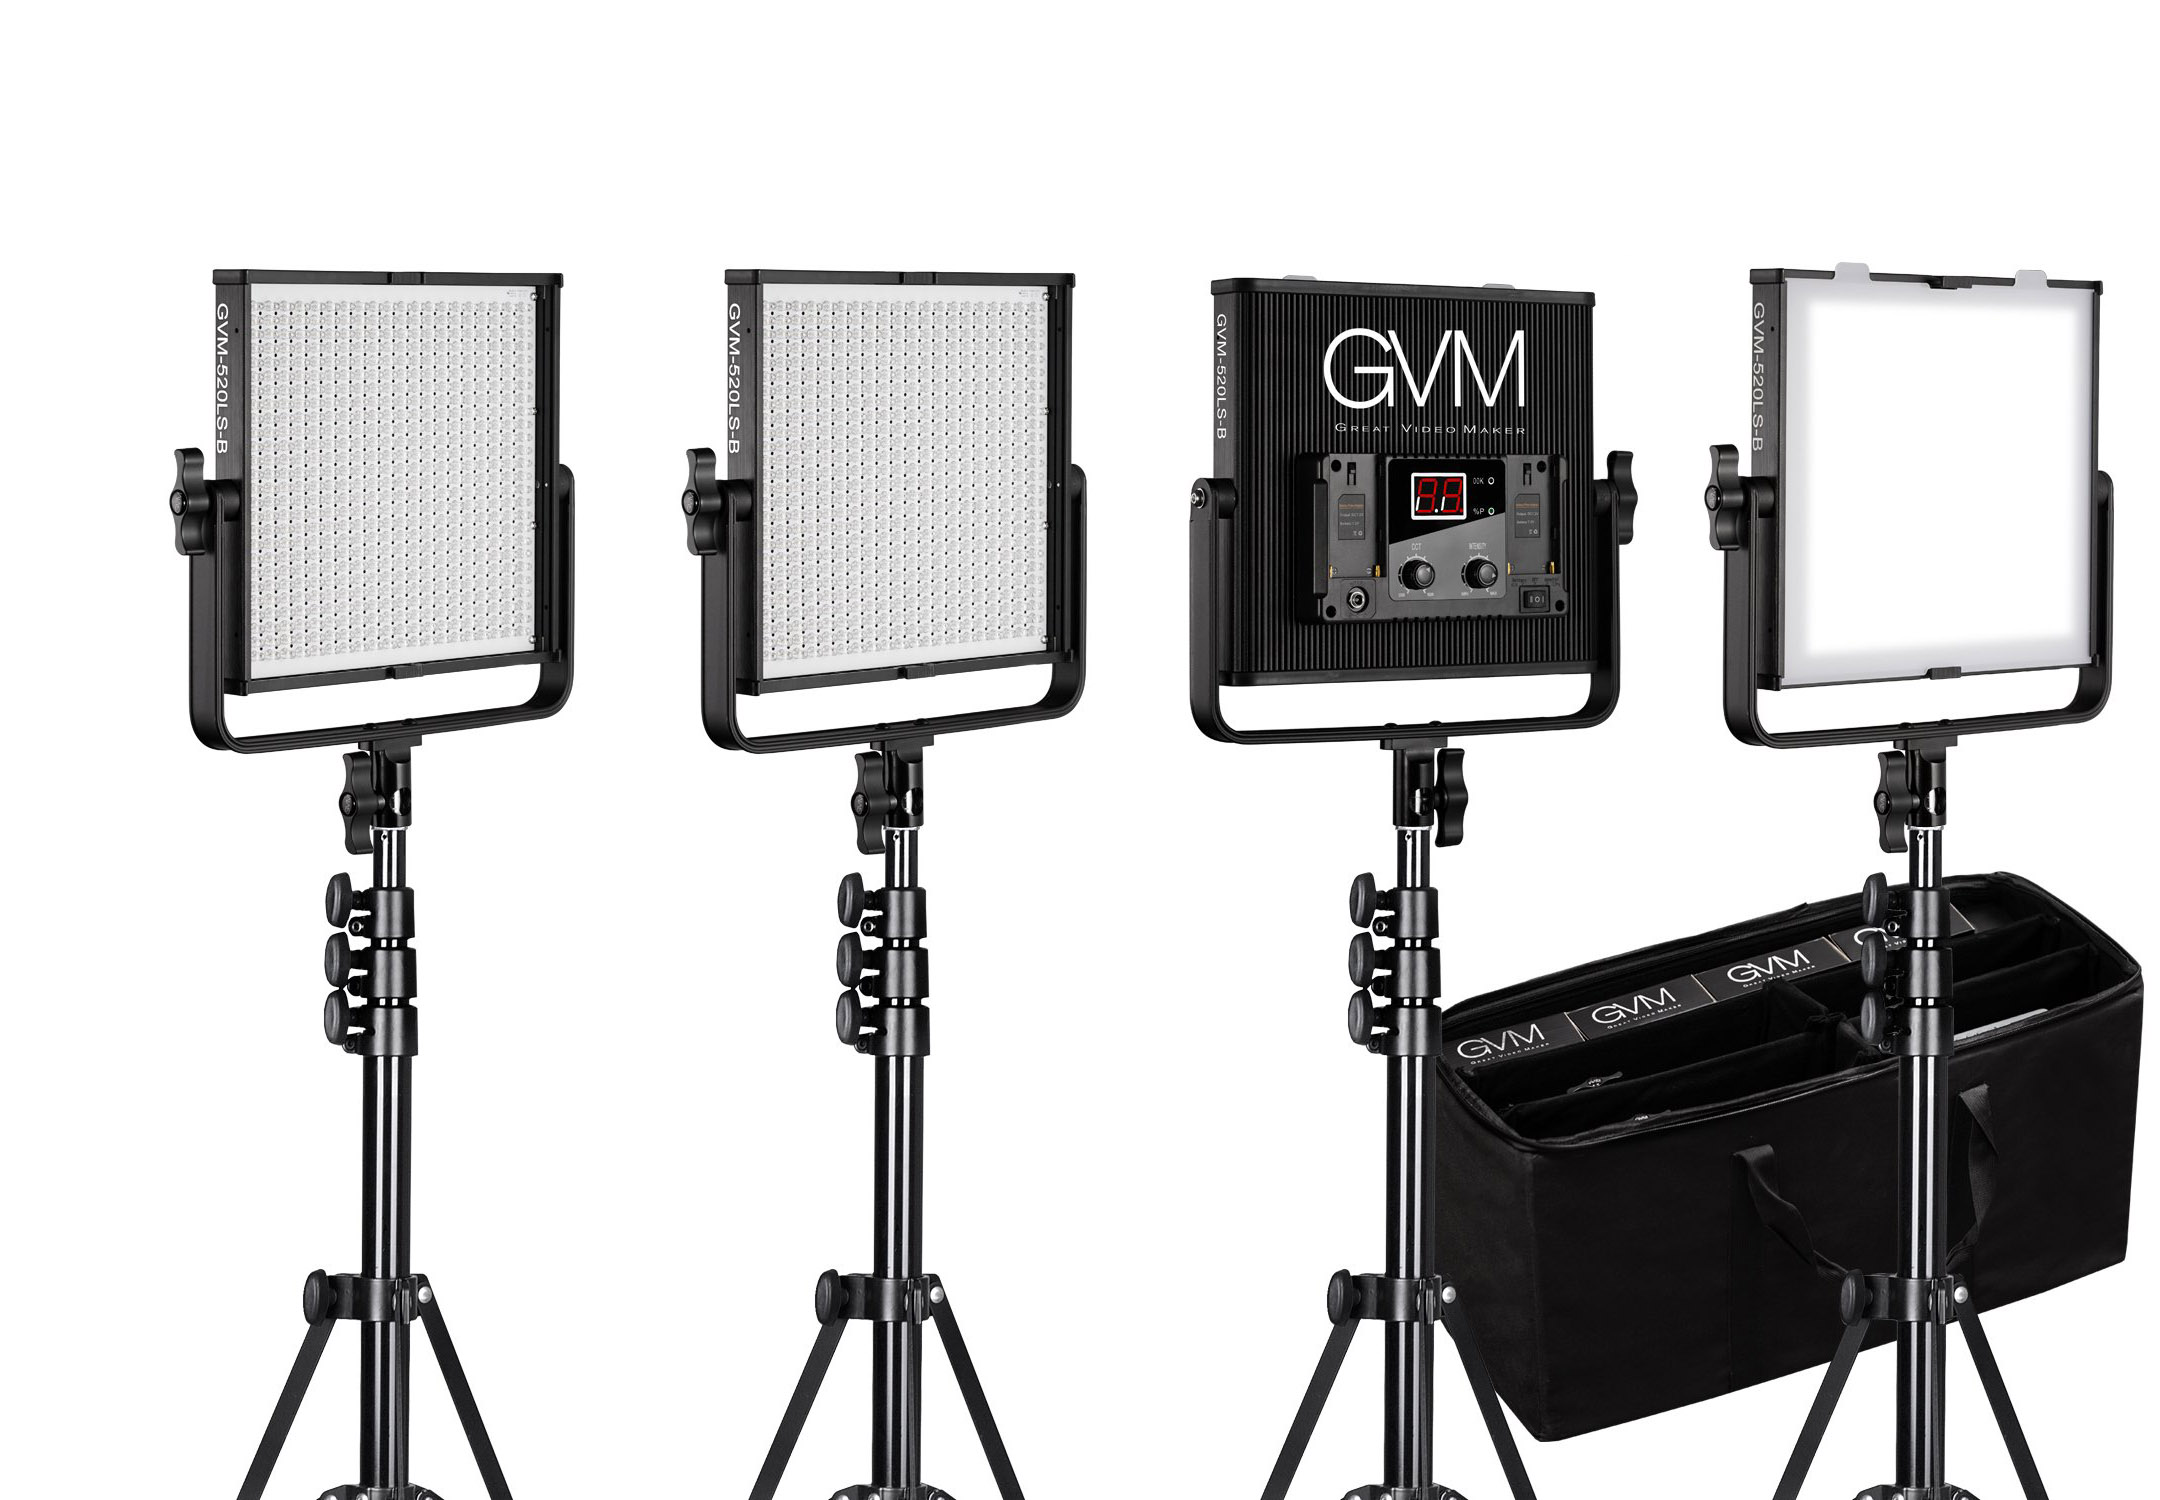 Dec 13 2018 - Now you can rent this LED video light kit at Westlight Studios for $100( in studio rental only )